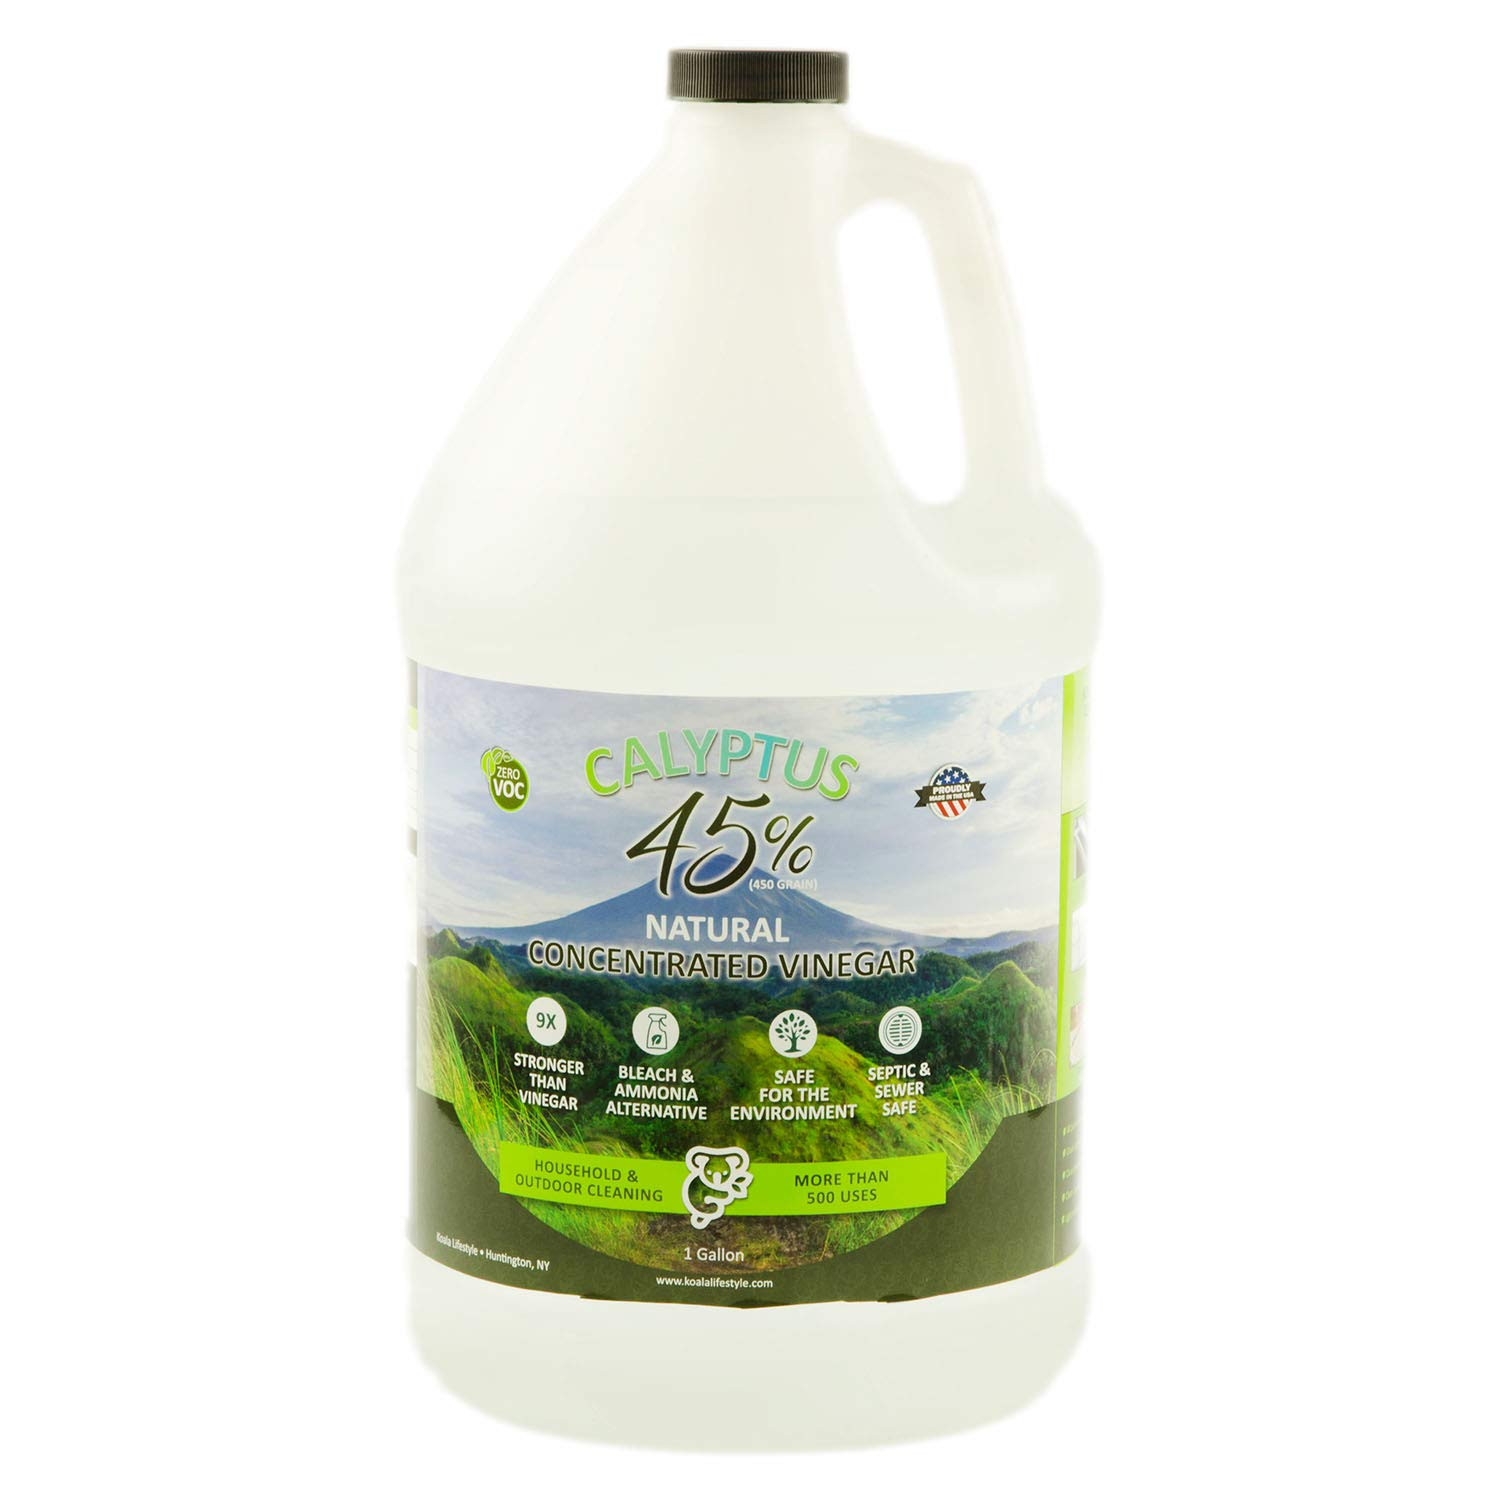 Calyptus 45% Pure Vinegar | 9x Stronger than Vinegar | 100% Natural Concentrated Cleaner | Home, Outdoor, and Garden Use | 450 Grain | Industrial Strength | Bleach and Ammonia Alternative | 1 Gallon by Calyptus